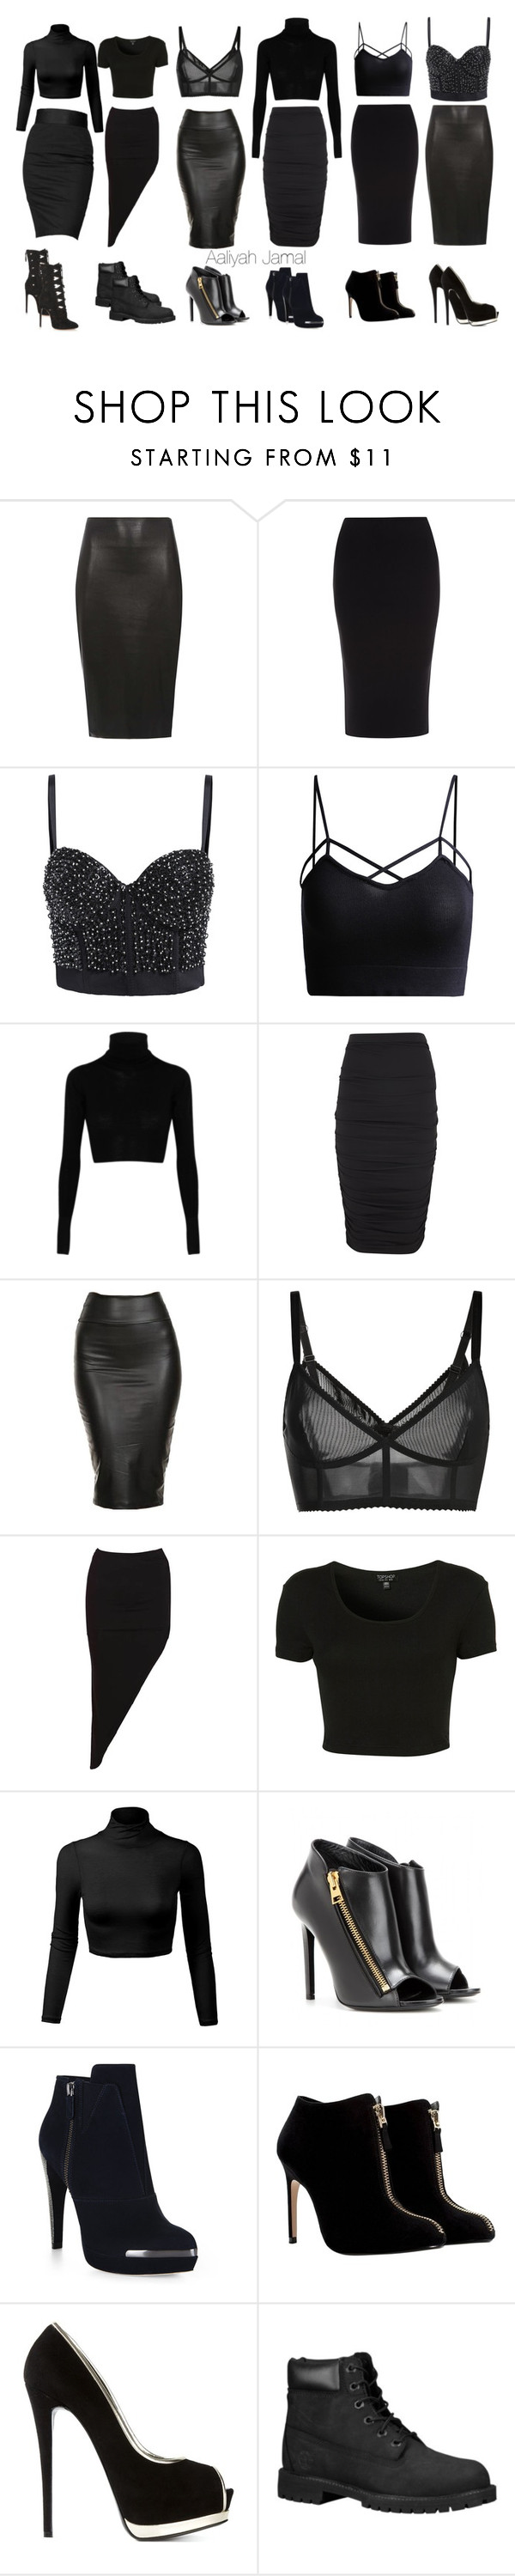 """""""Untitled #62"""" by yxnggoddess ❤ liked on Polyvore featuring Dorothy Perkins, Roland Mouret, MM6 Maison Margiela, Lanvin, Giambattista Valli, Topshop, Rock & Republic, Tom Ford, Hervé Léger and Zara"""